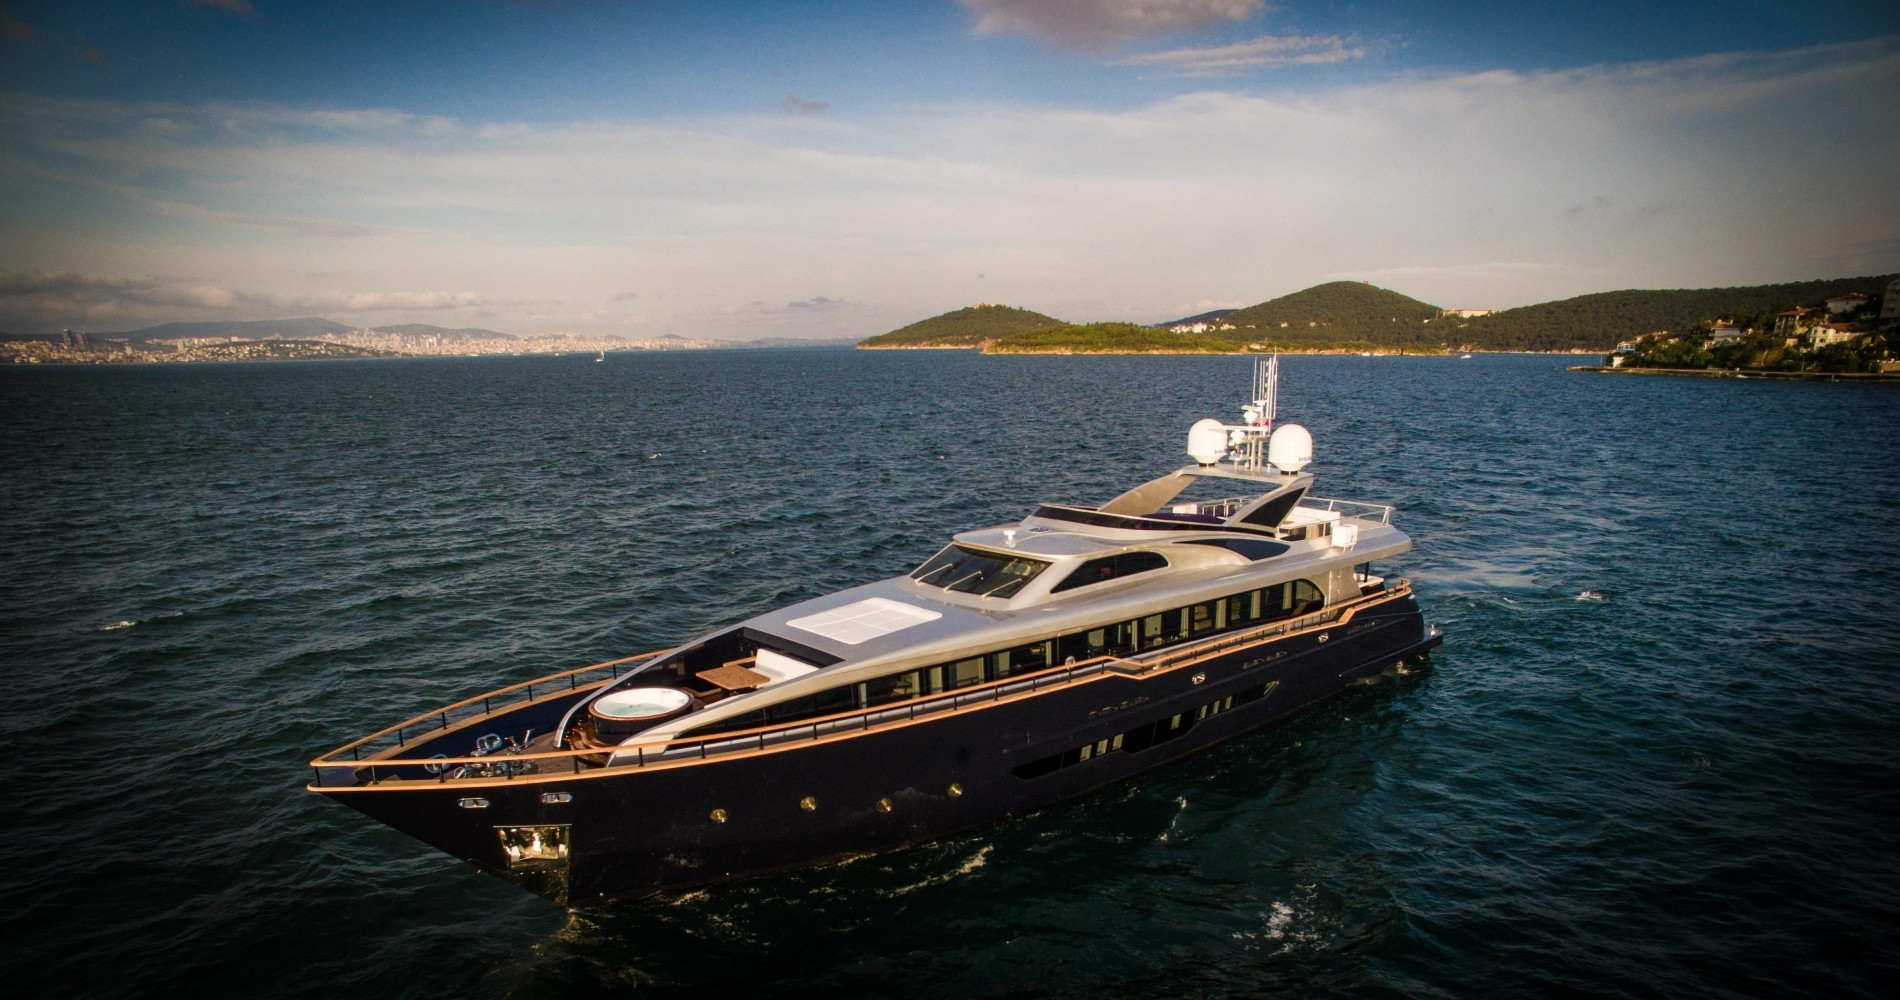 Яхта H Luxury Yachting 124 - фото 17 из 18